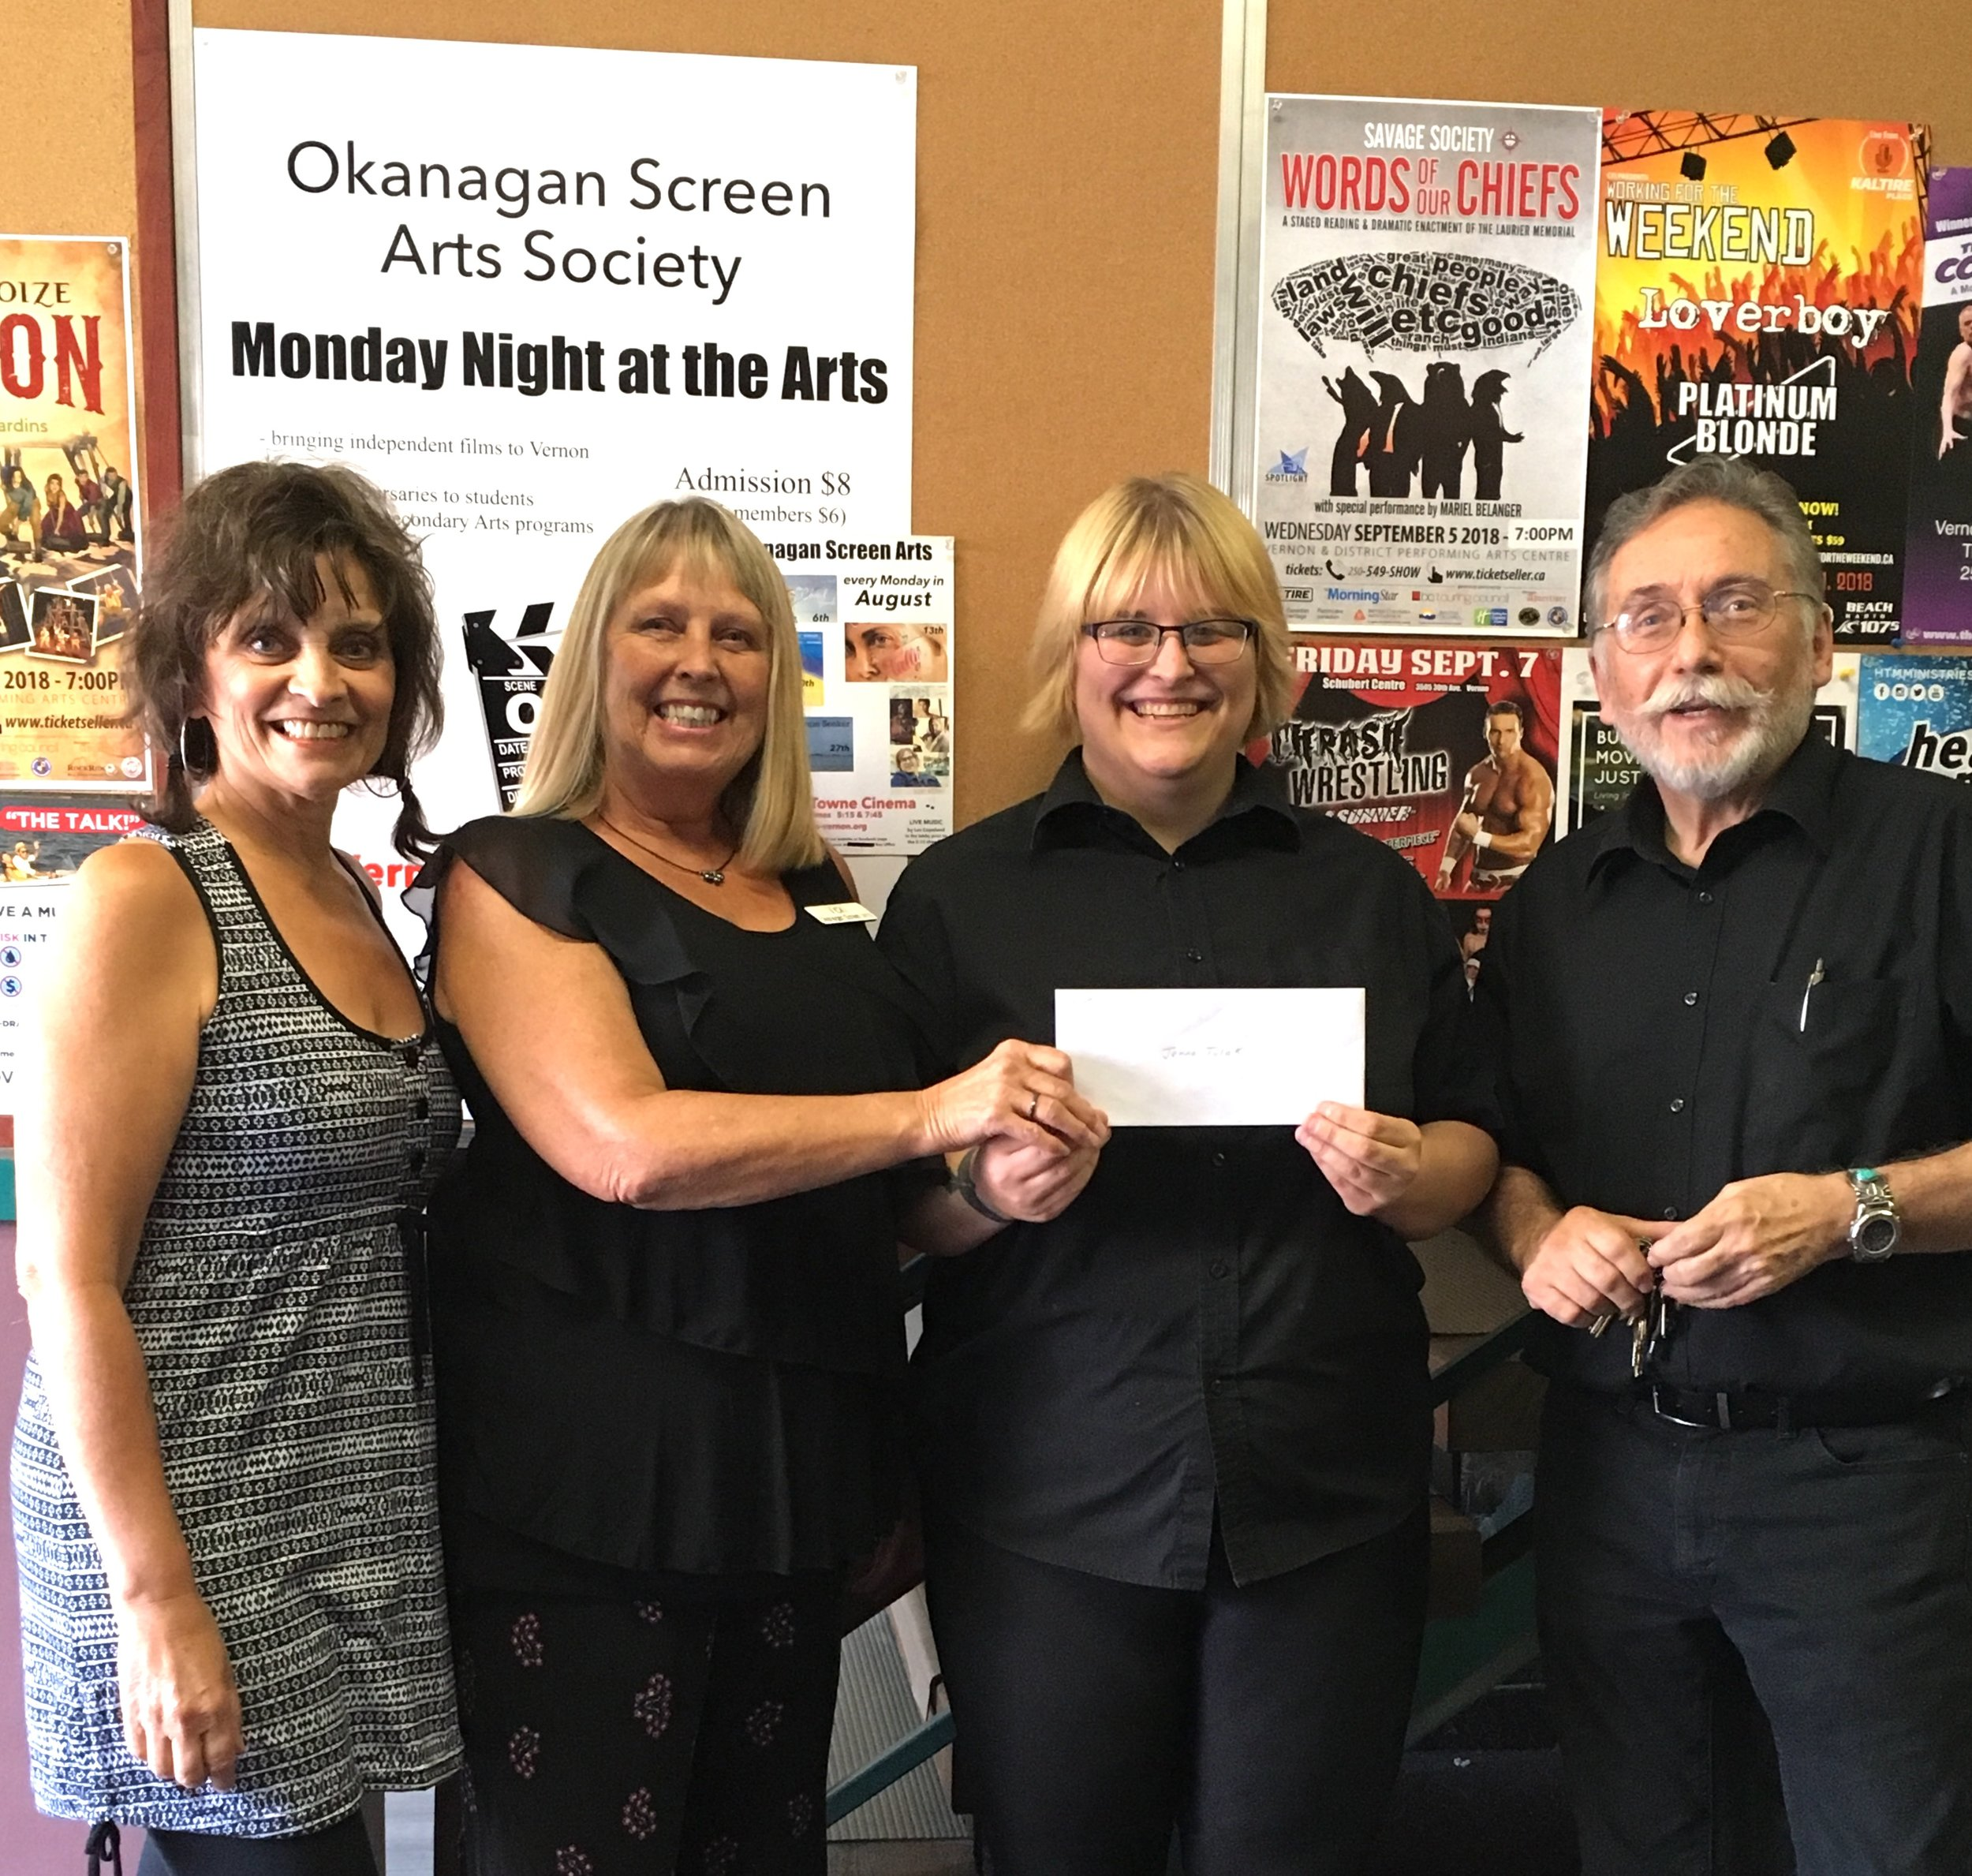 From Left: OSA Reps Sally Evans and Vicki Porter, recipient Jenna Tulak, and Gerry Sellers (Towne Cinema)